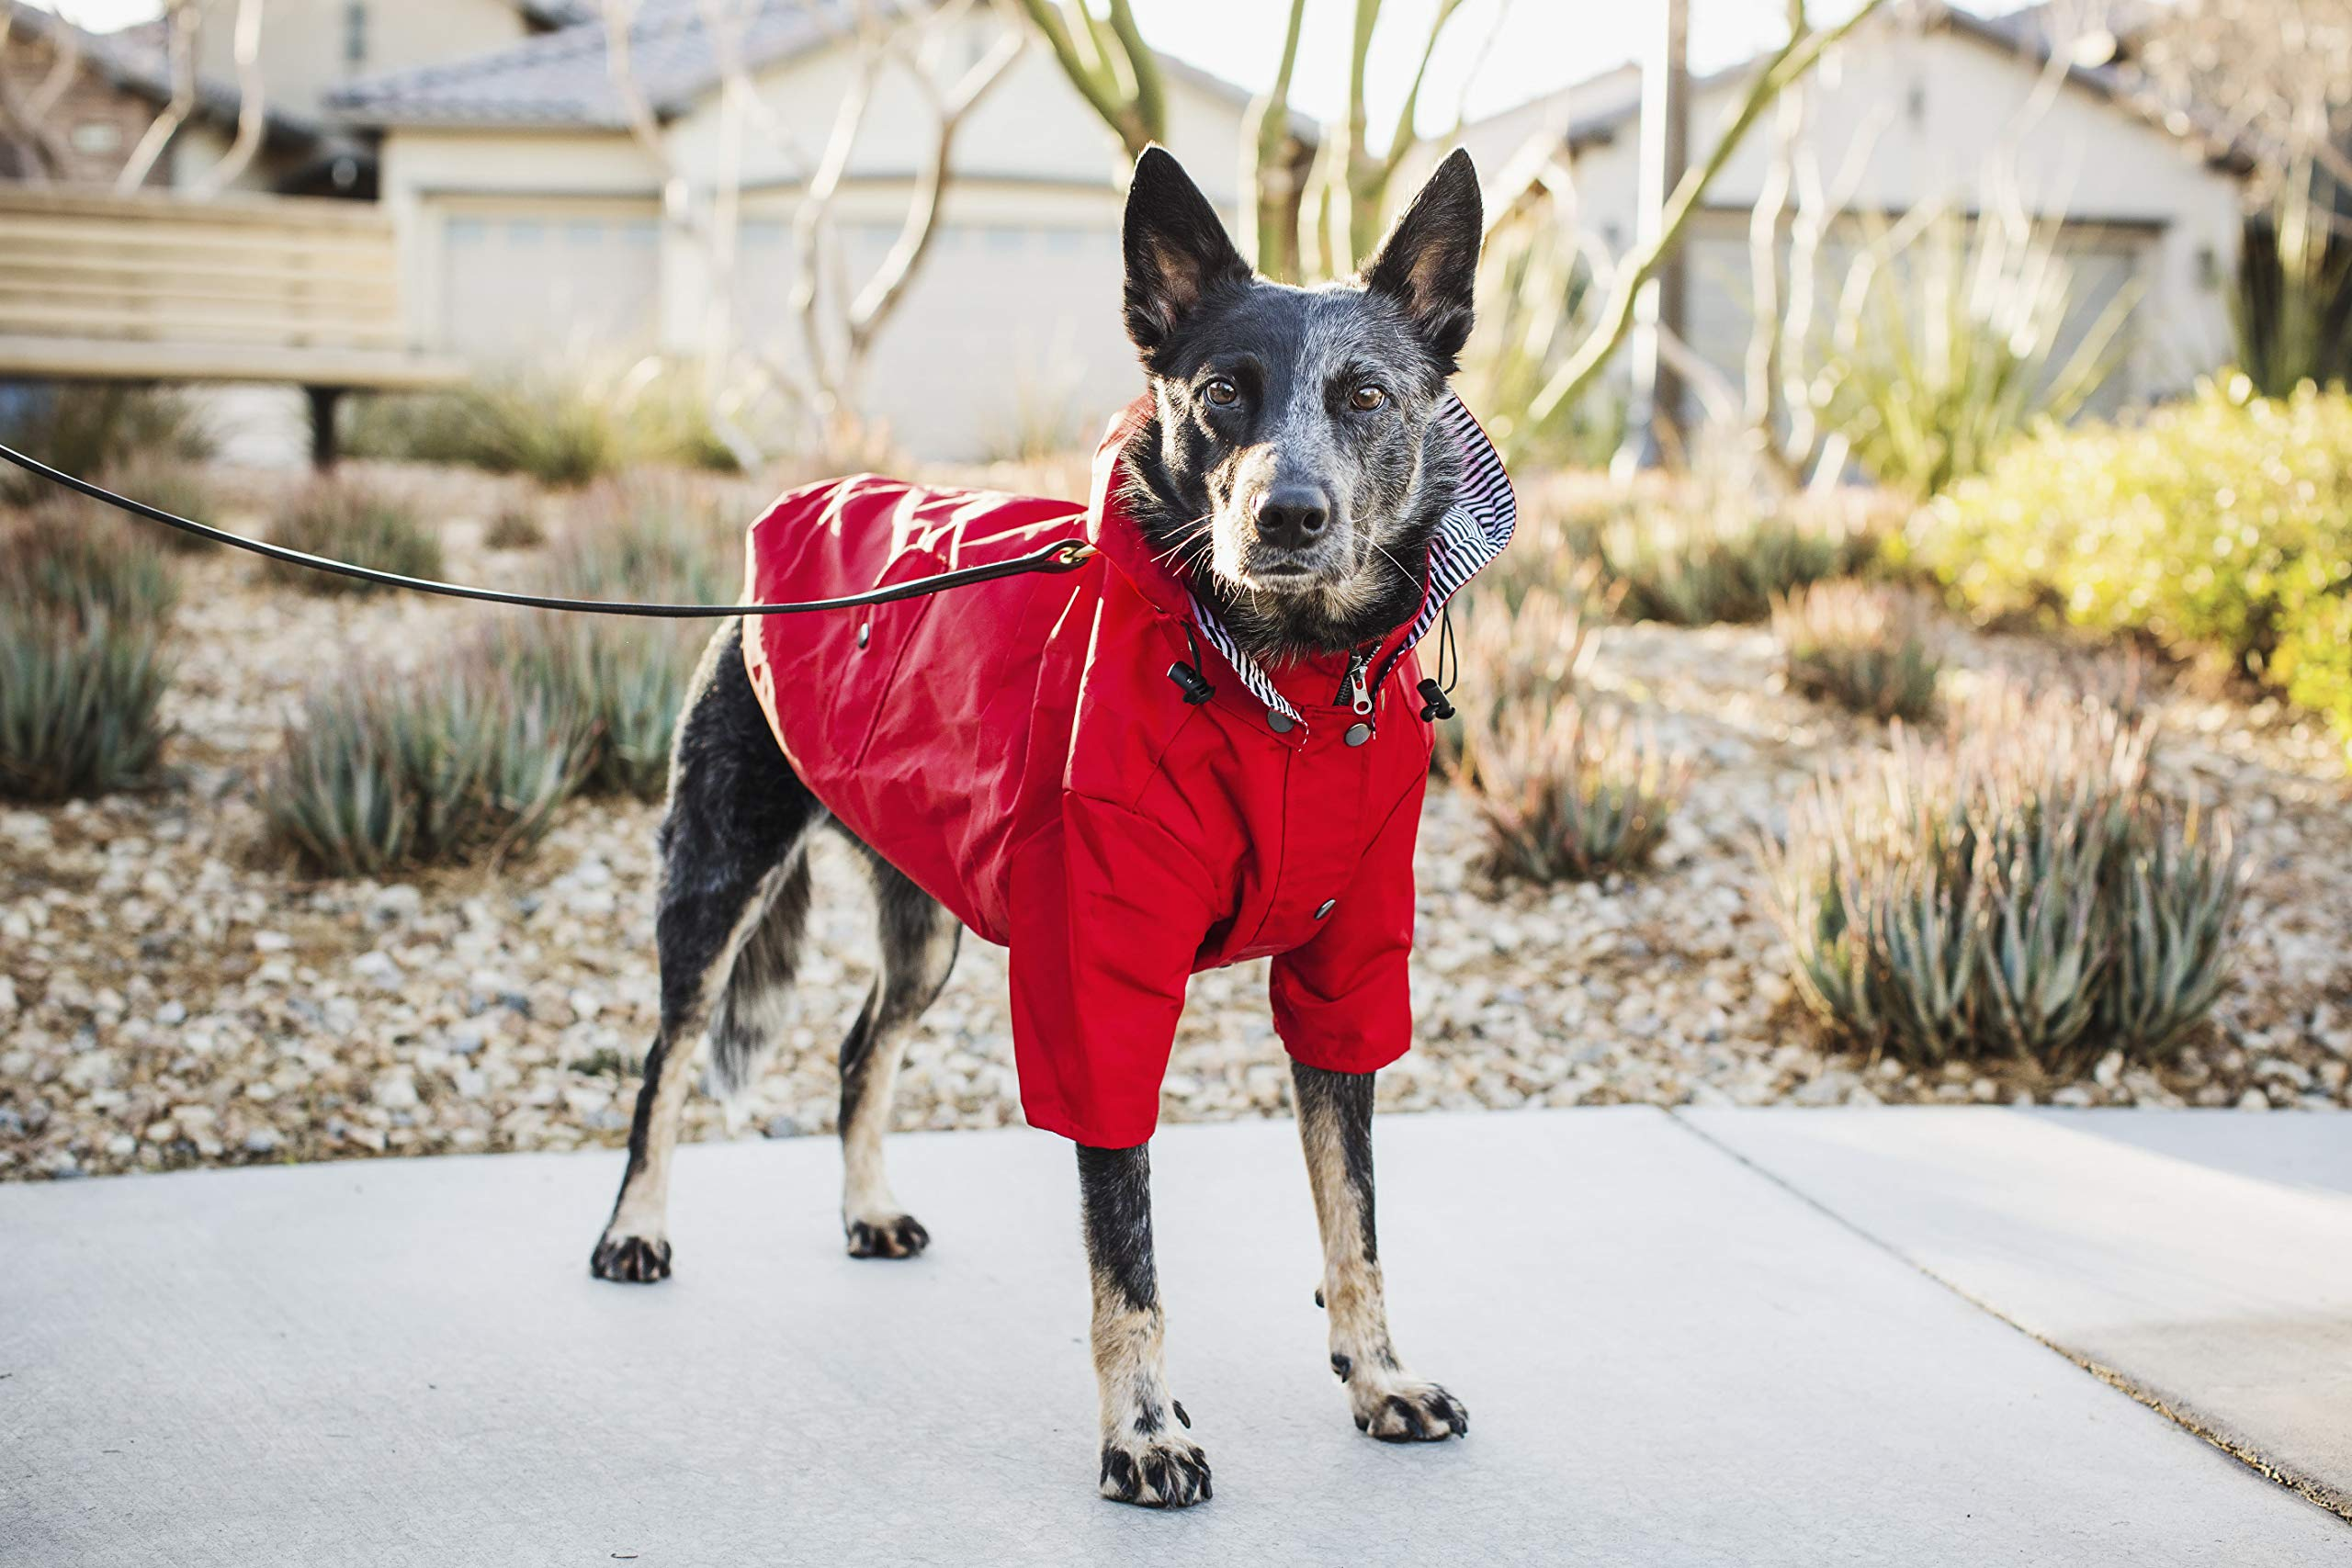 Ellie Dog Wear Red Zip Up Dog Raincoat with Reflective Buttons, Pockets, Rain/Water Resistant, Adjustable Drawstring, Removable Hoodie - Size XS to XXL Available - Stylish Premium Dog Raincoats (M) by Ellie Dog Wear (Image #5)